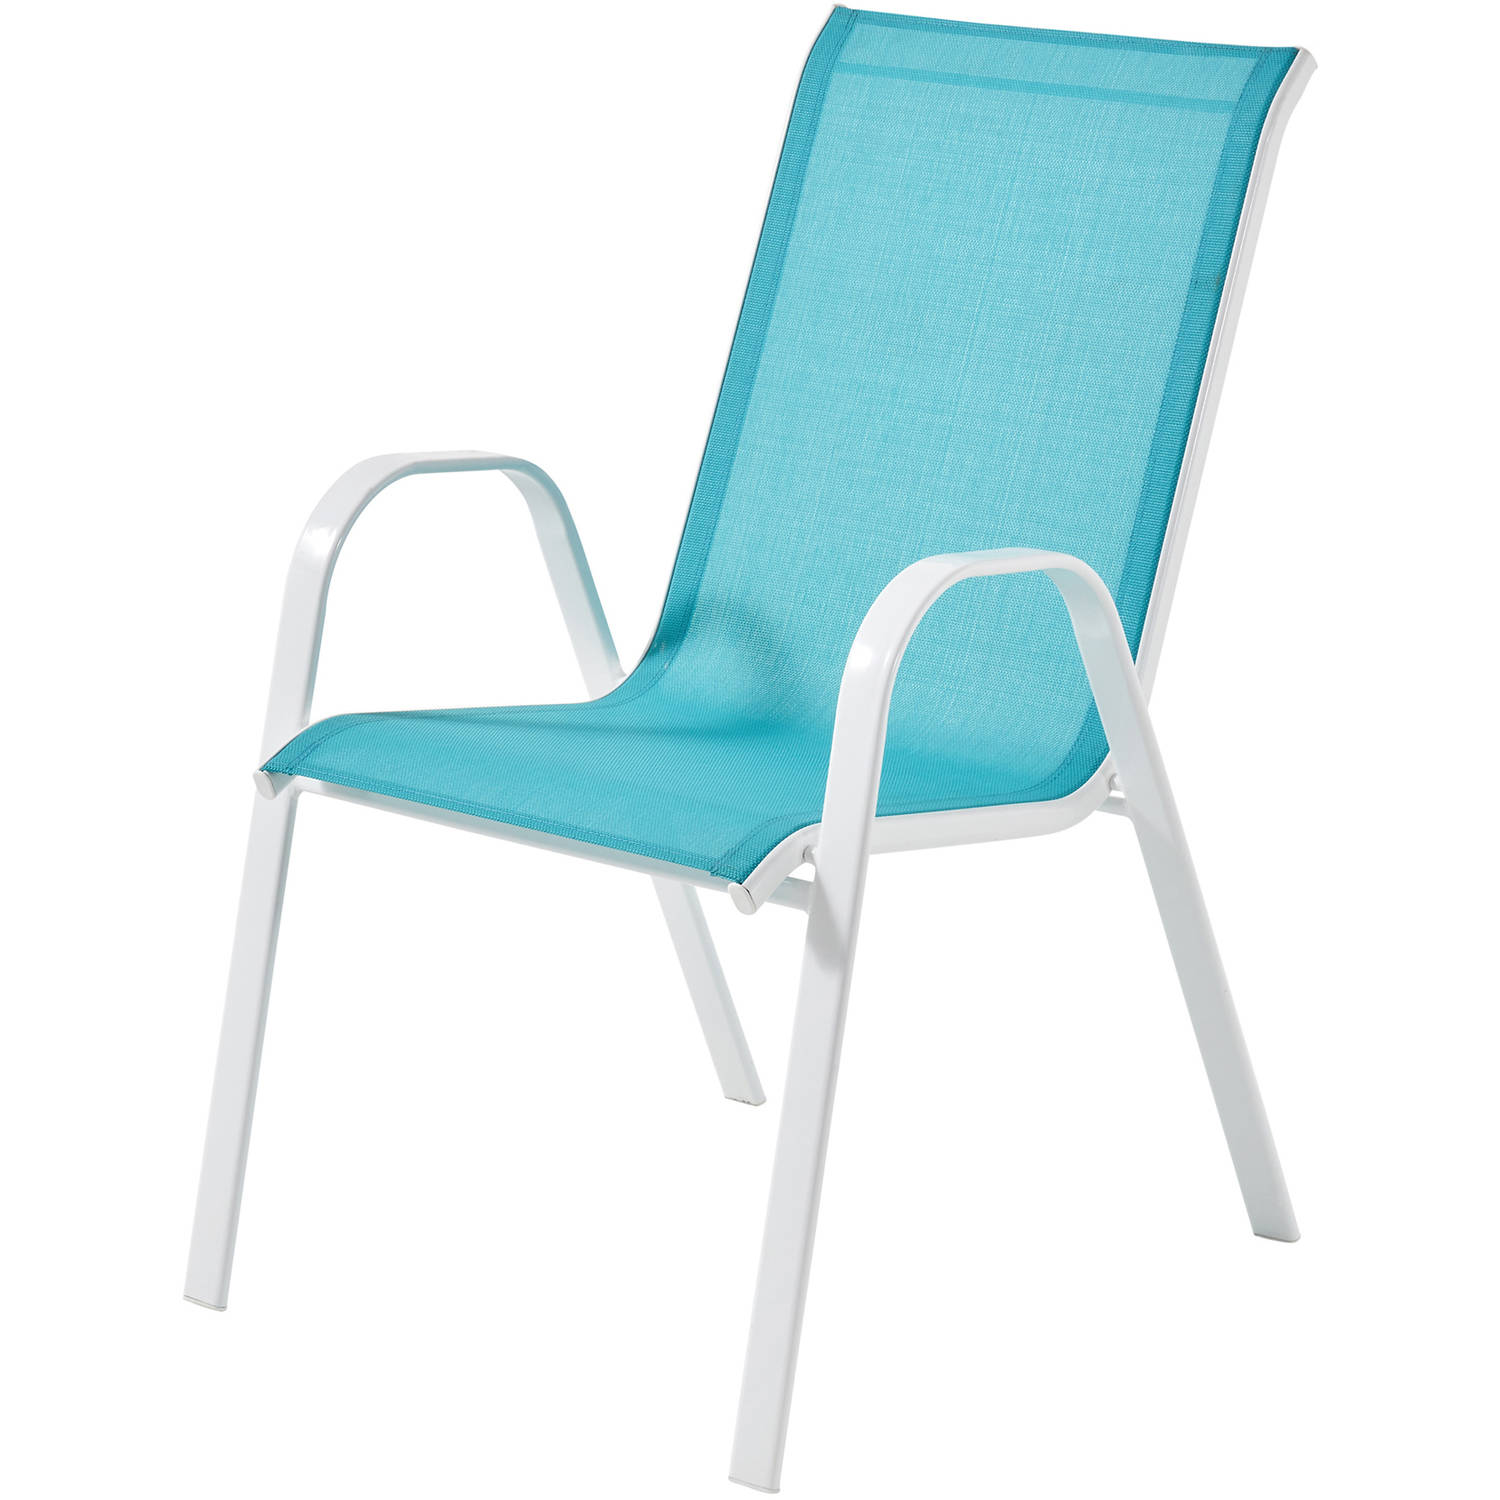 Mainstays Heritage Park Stacking Sling Chair, Turquoise